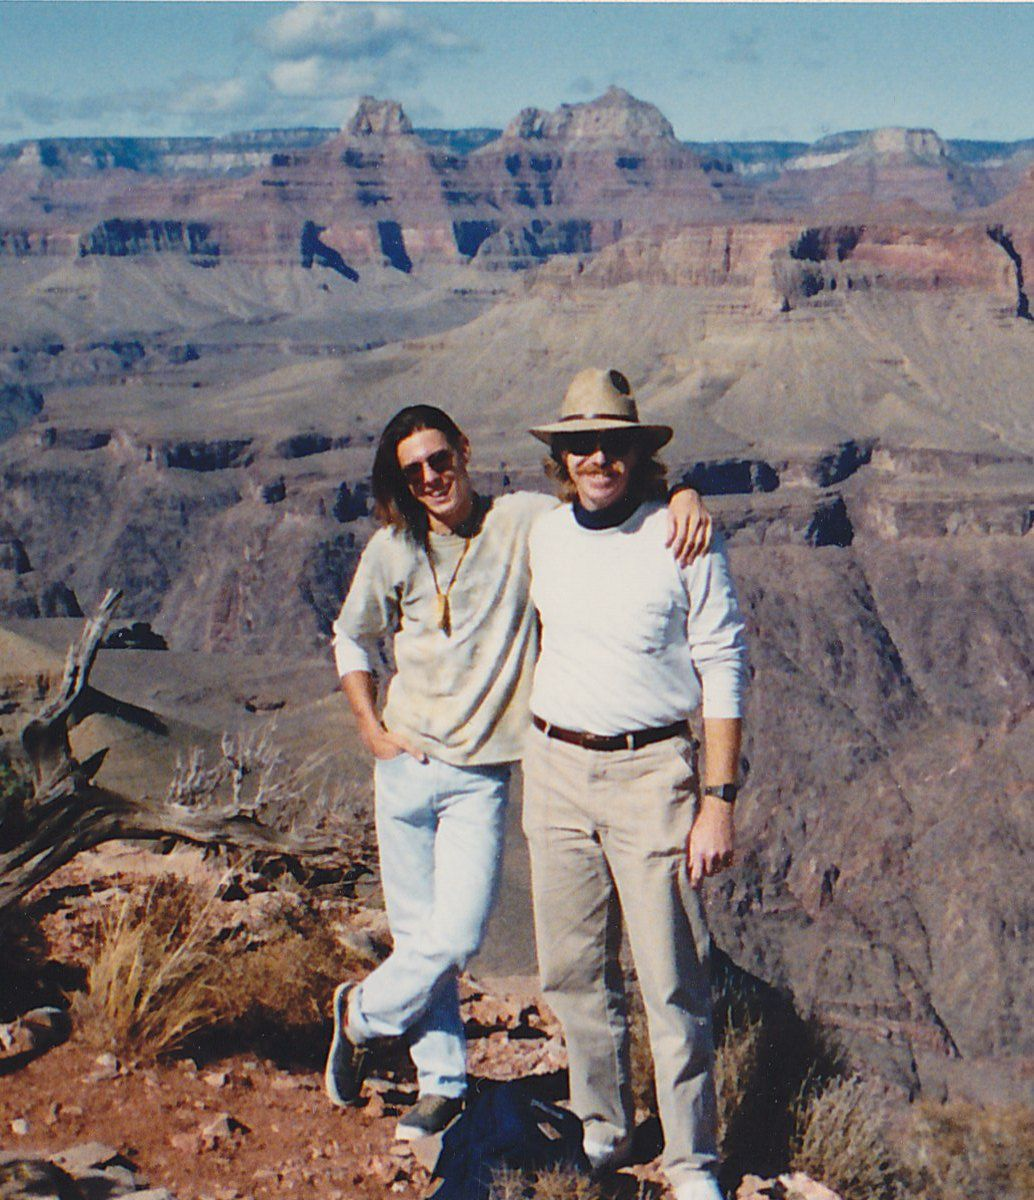 Noel Schuderer with his father, John at the Grand Canyon